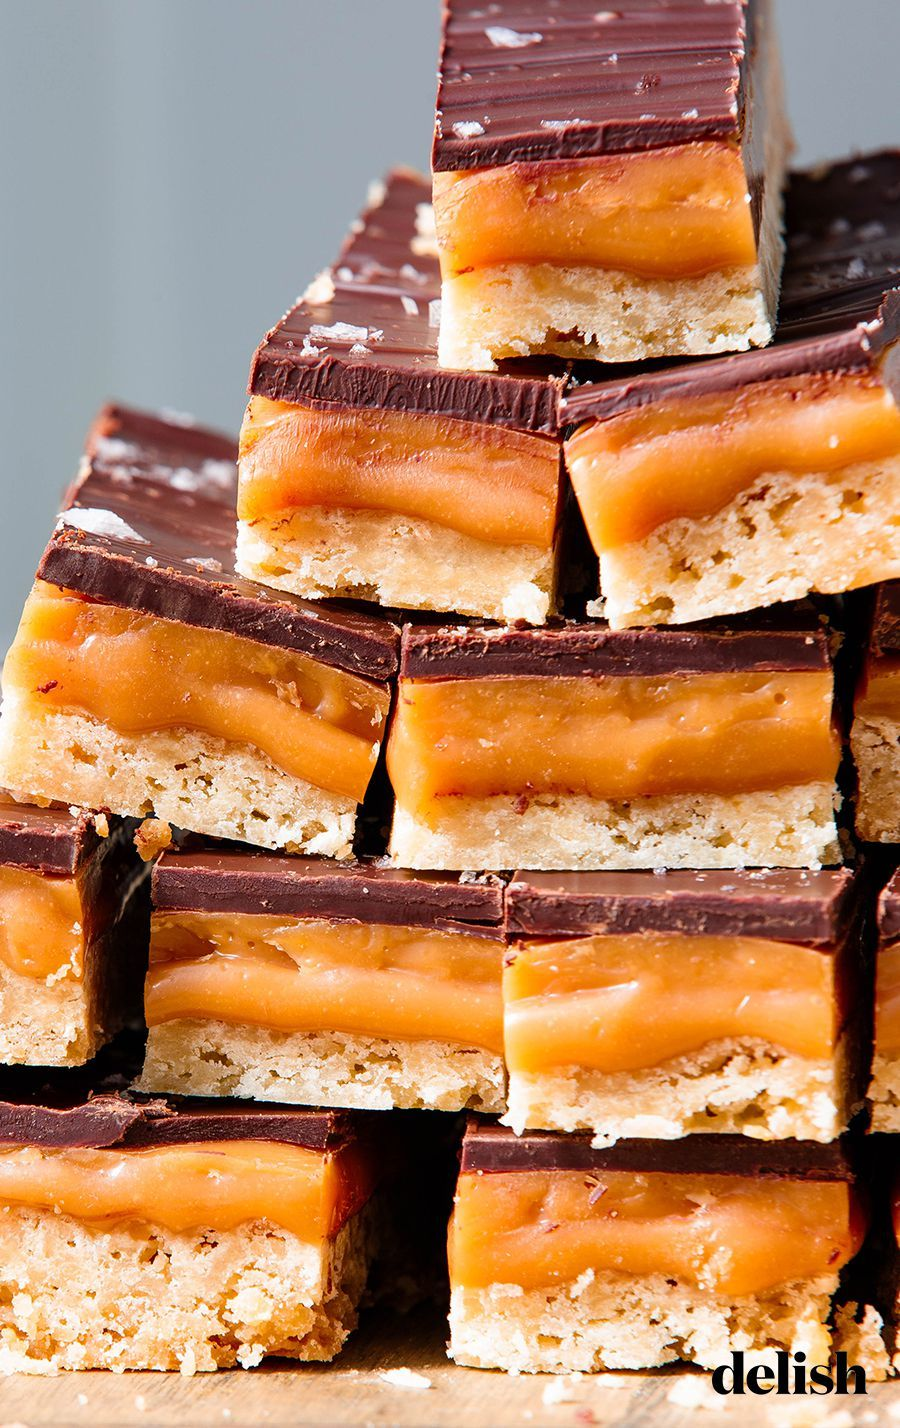 Millionaire Shortbread Is Pretty Much A Homemade TwixDelish